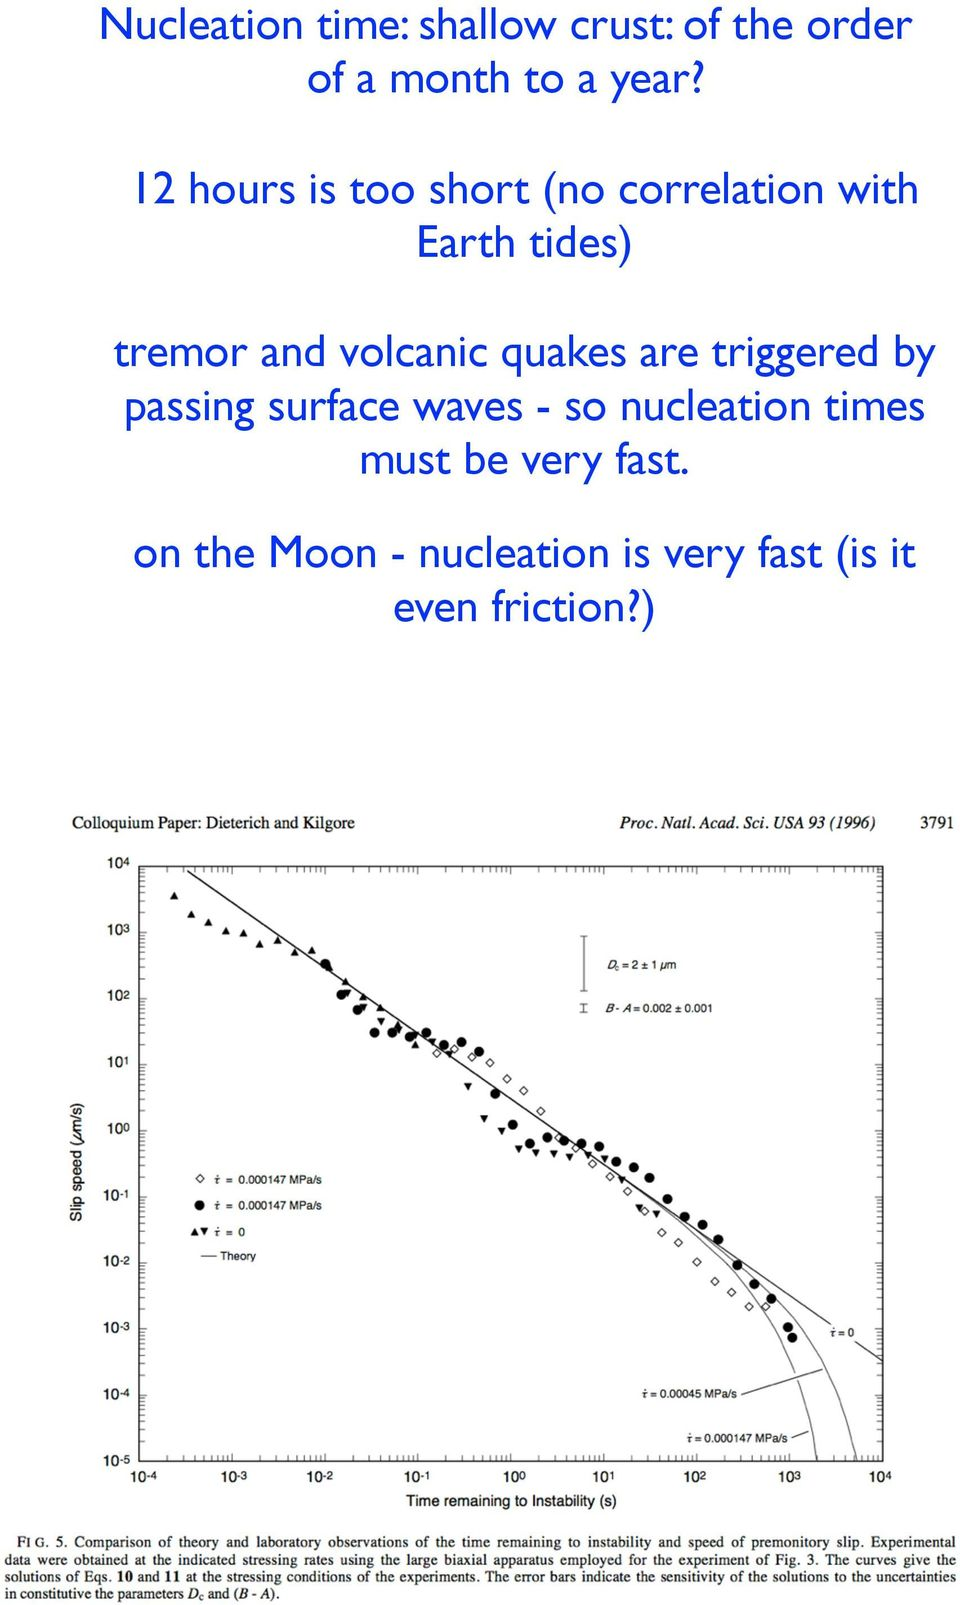 volcanic quakes are triggered by passing surface waves - so nucleation